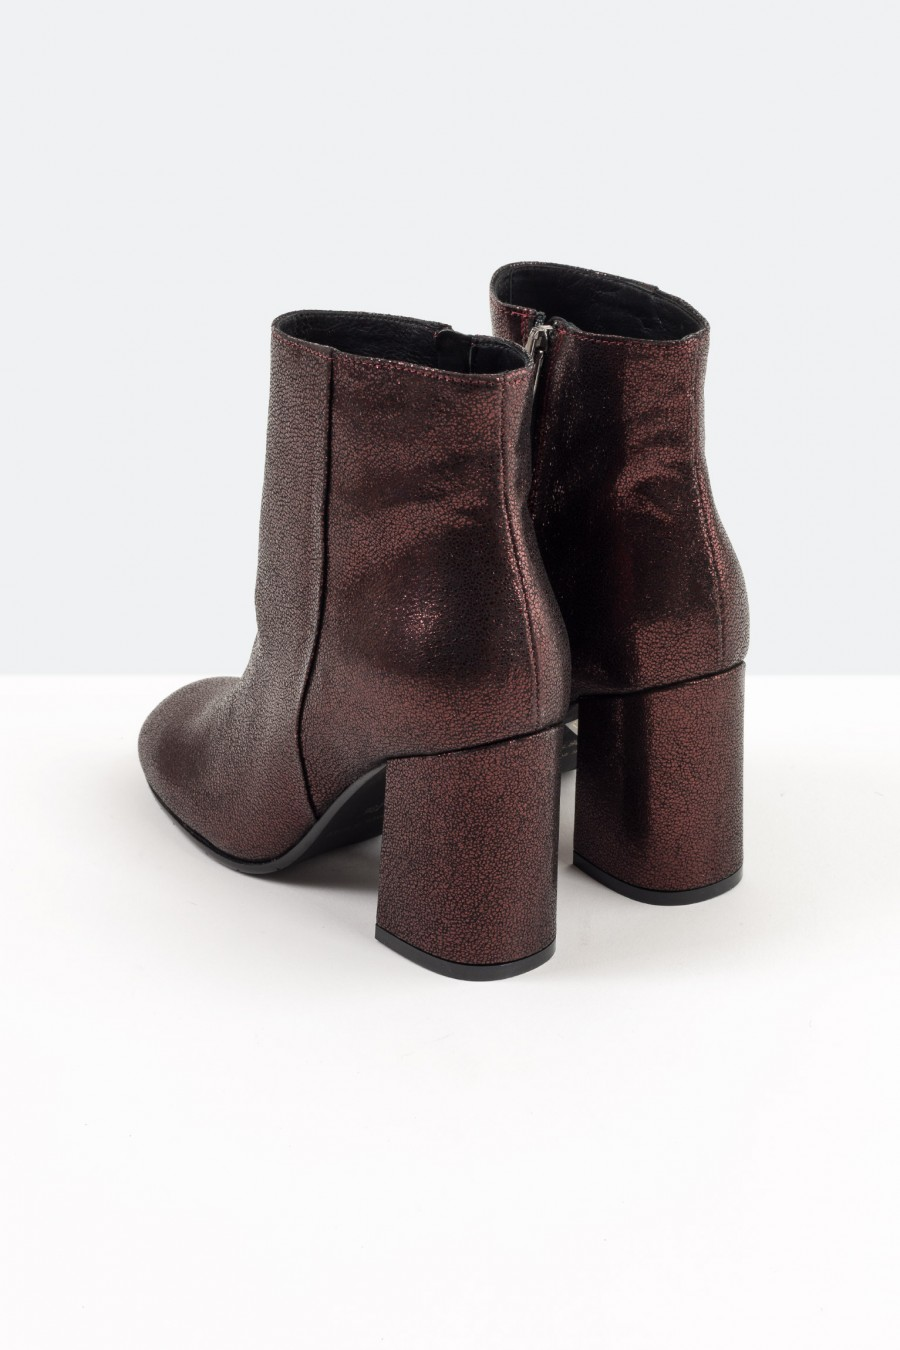 Burgundy leather ankle boots with high heels